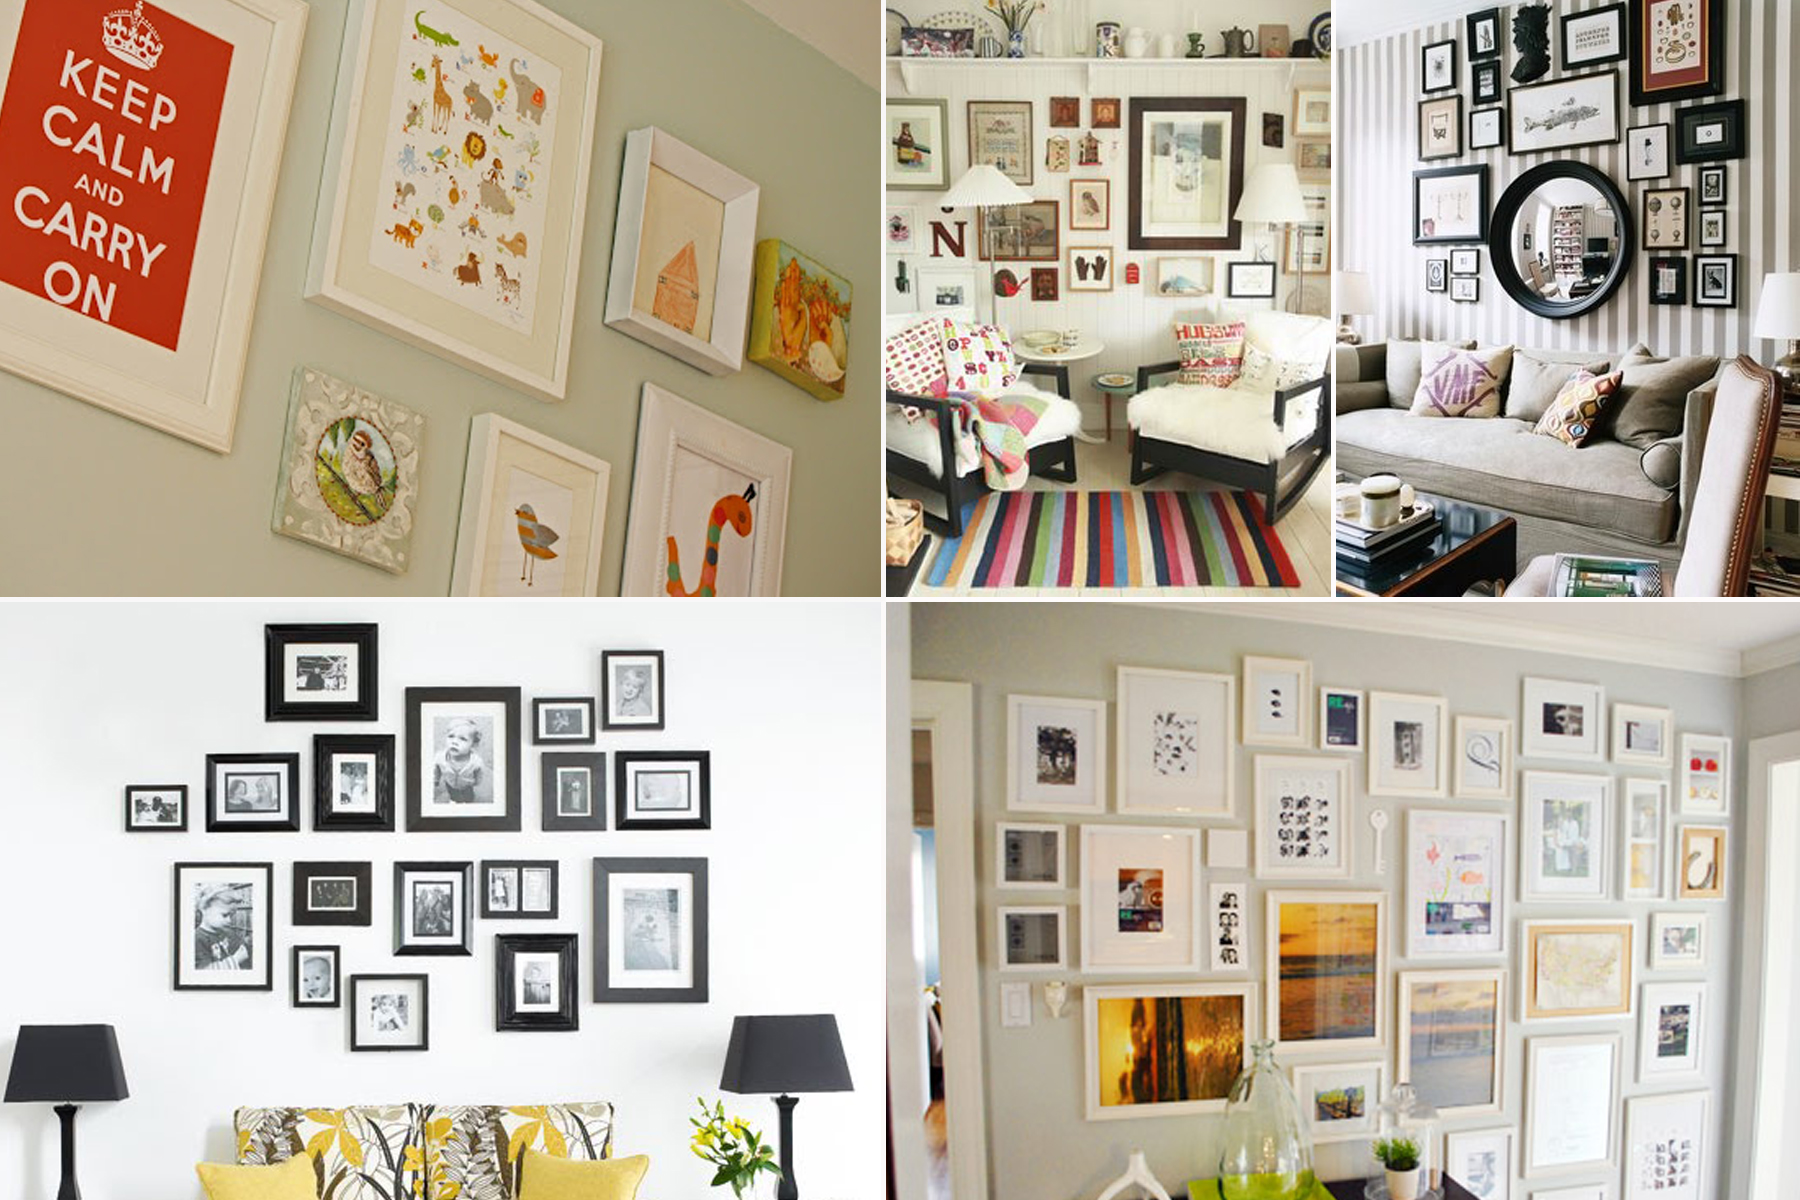 Wall Decor Frames wall decor photo frames - techieblogie